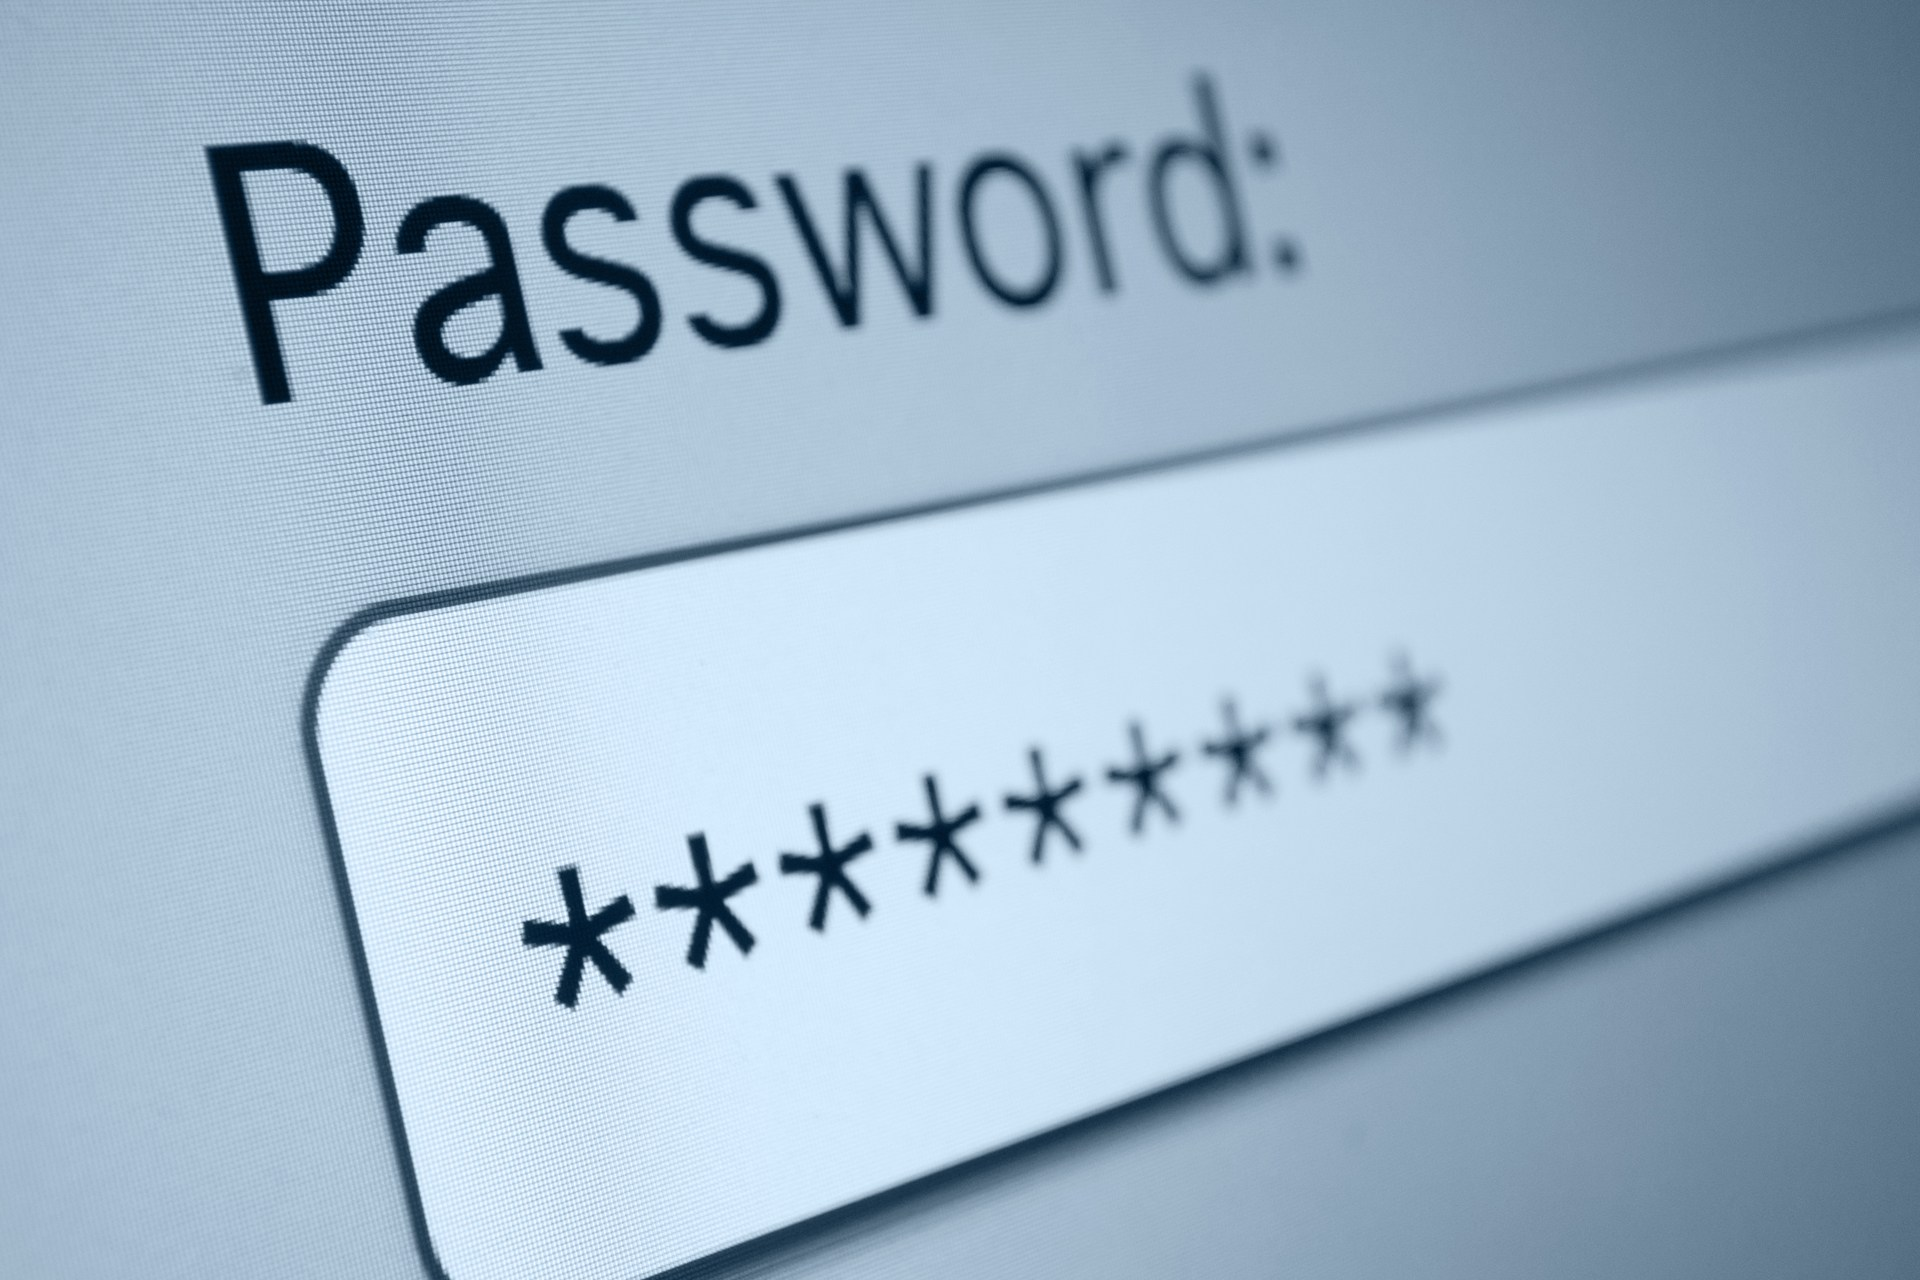 25 most common passwords